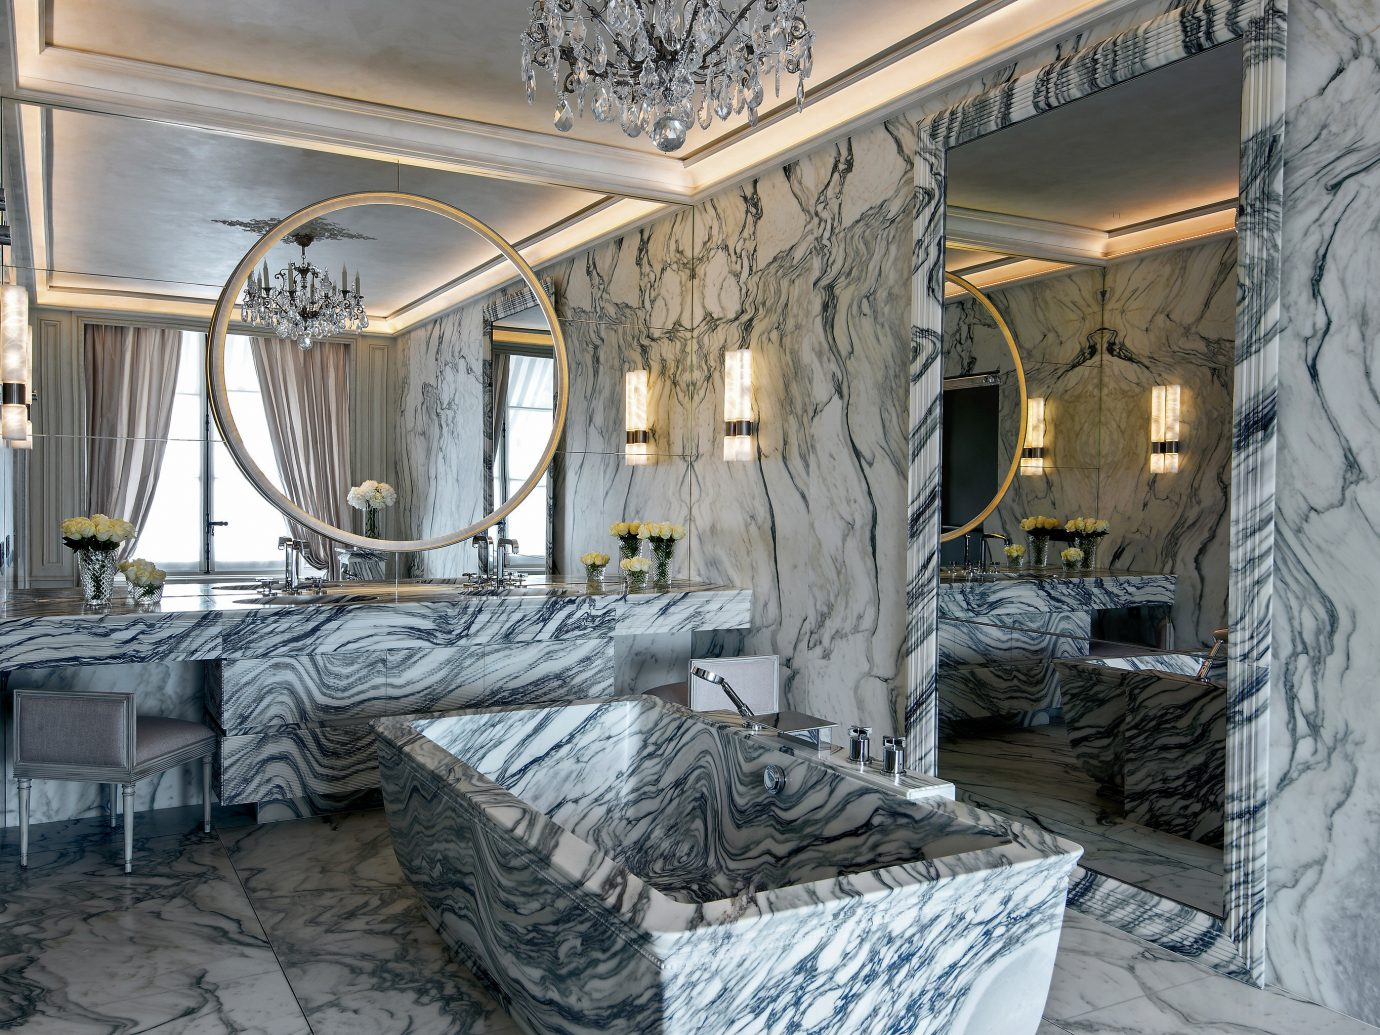 Hotels Luxury Travel indoor bed Architecture room interior design Bedroom home window house ceiling facade stone furniture